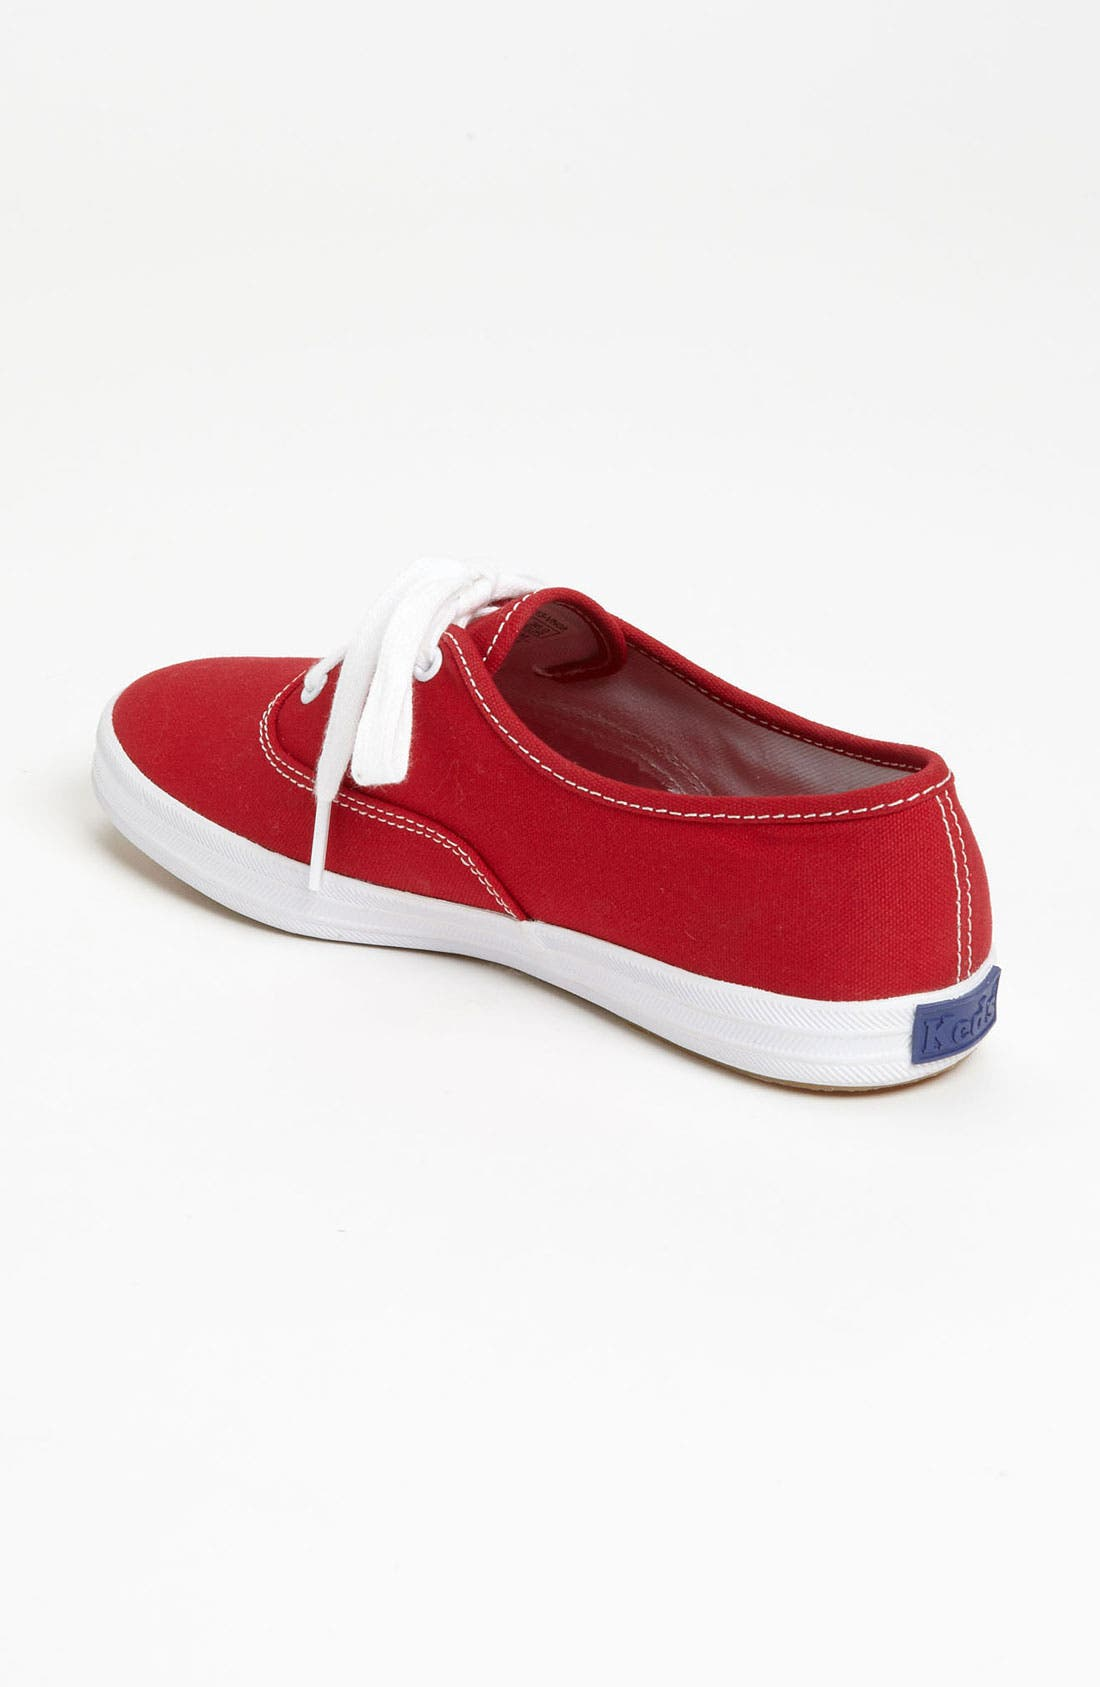 Alternate Image 2  - Keds® Taylor Swift 'RED' Champion Sneaker (Limited Edition)